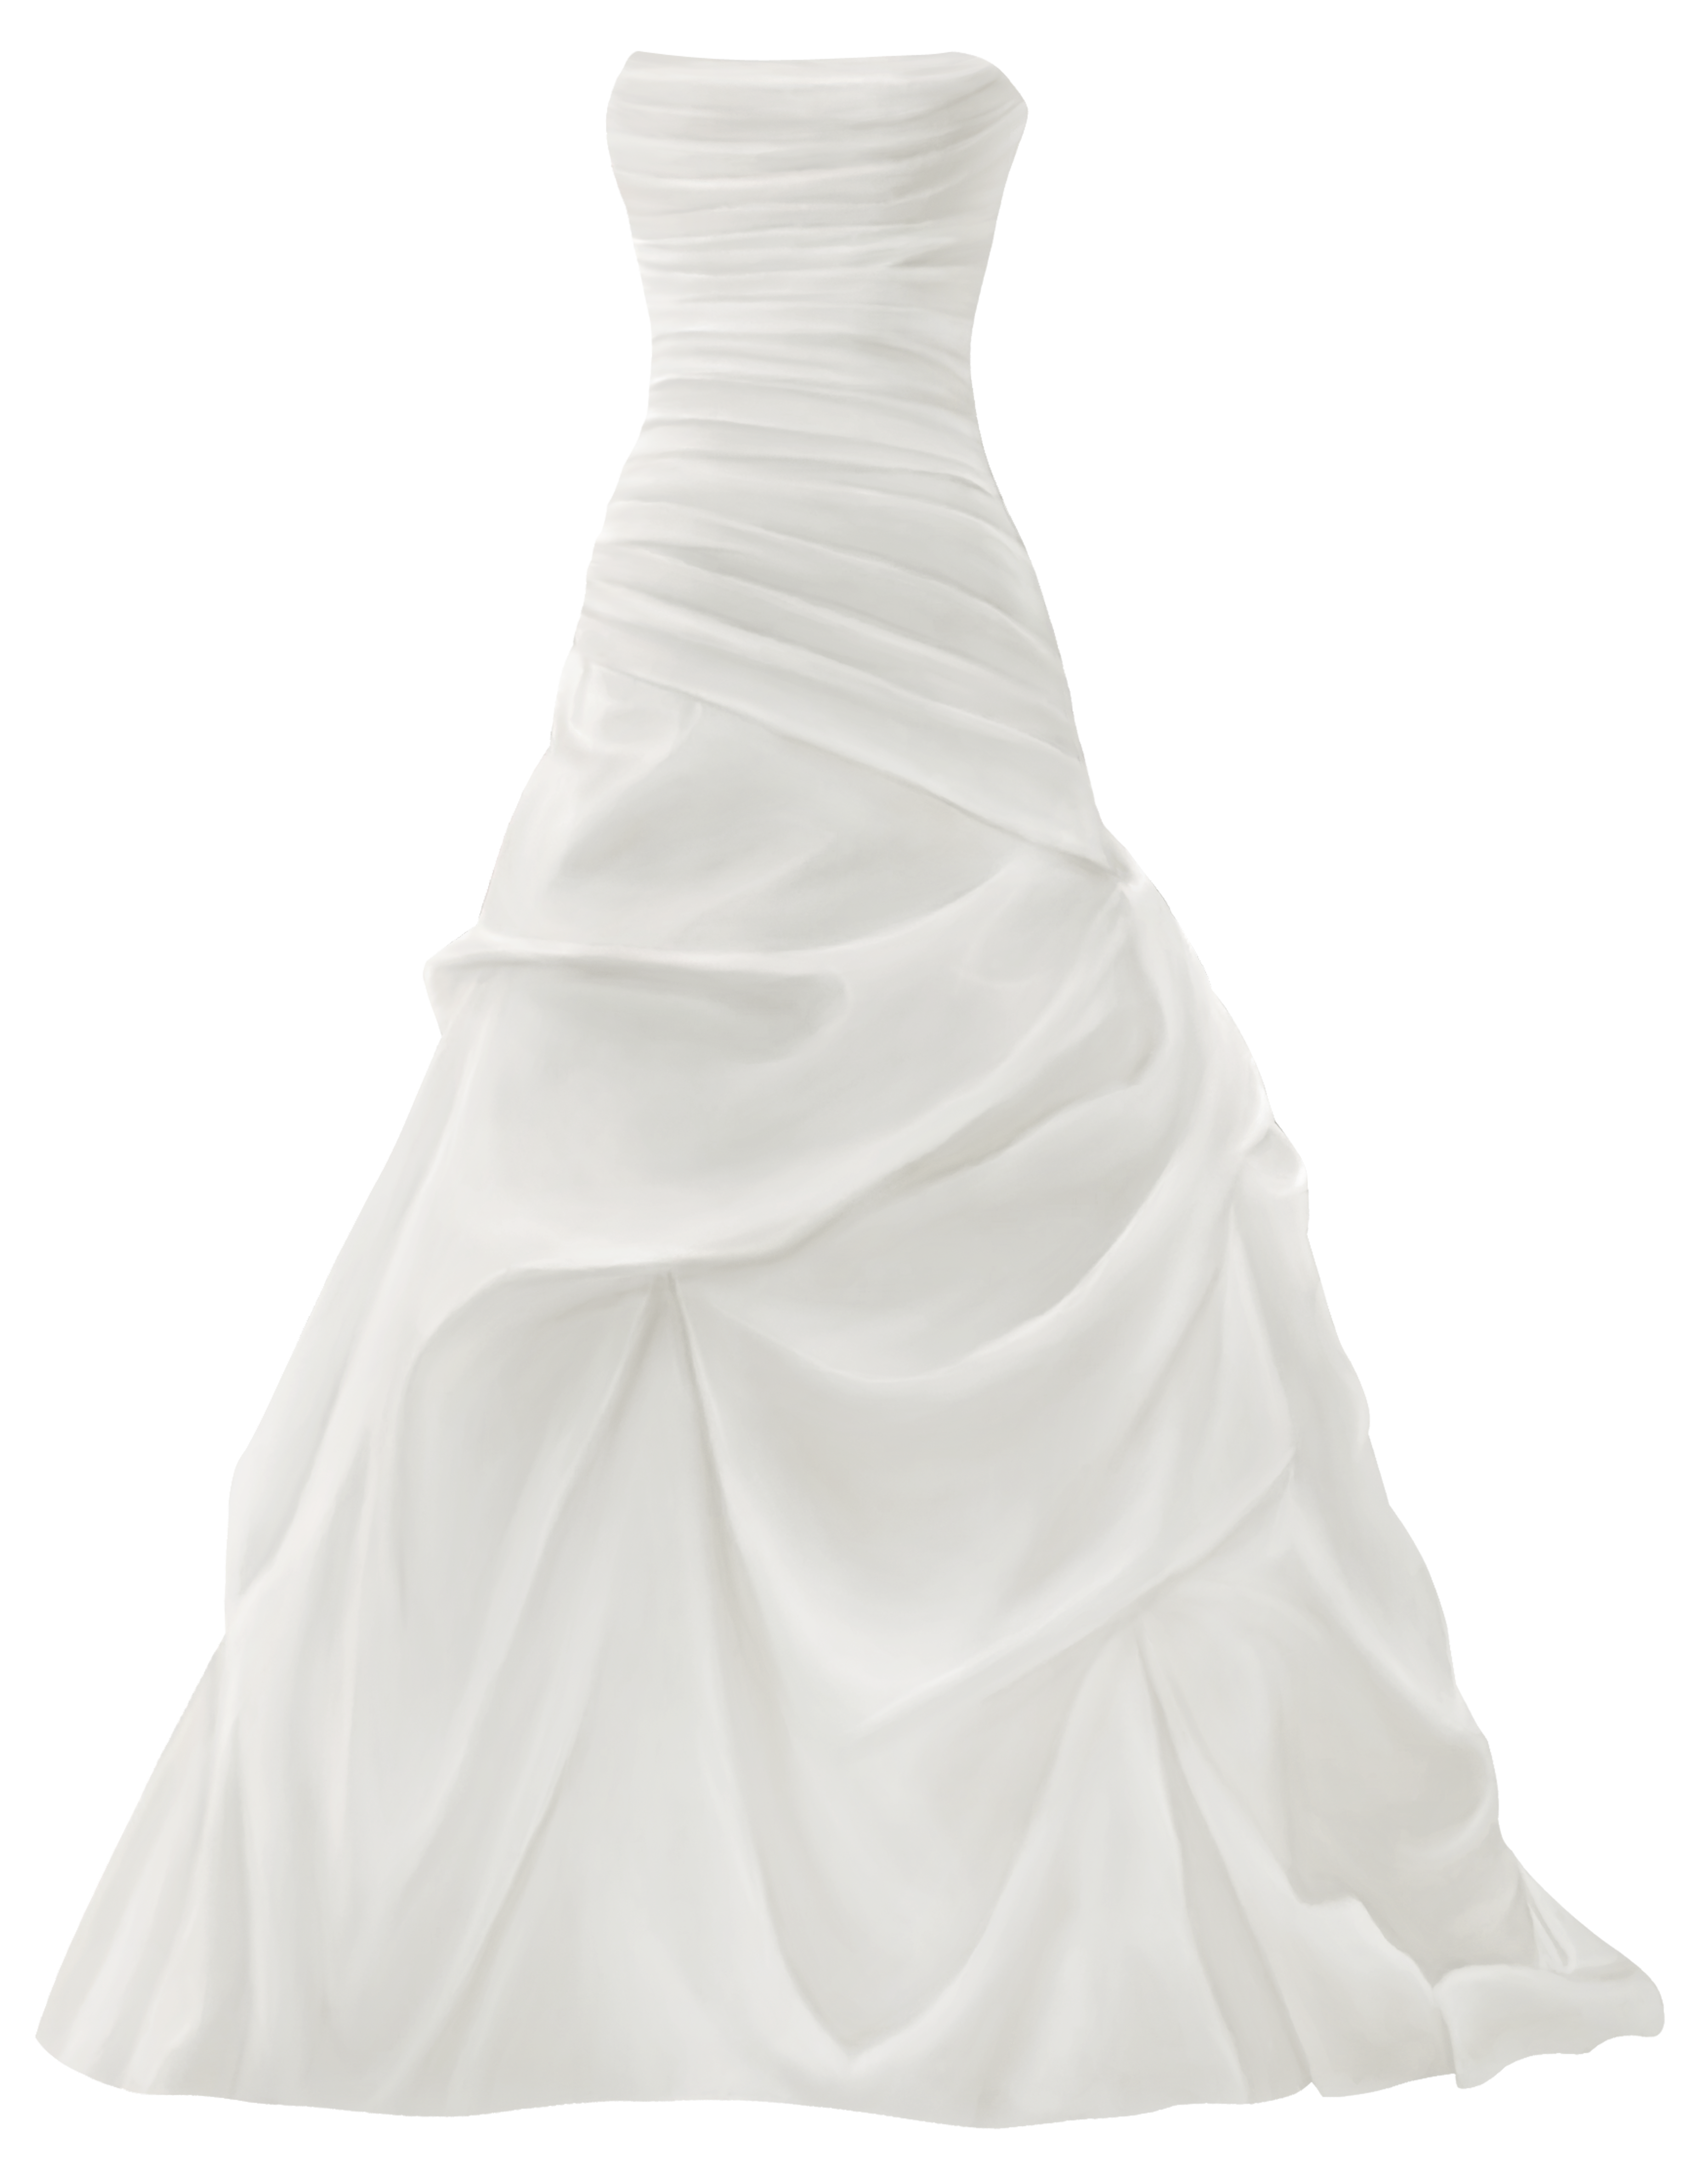 Costume clipart clothing. Wedding dress silhouettes atdisability